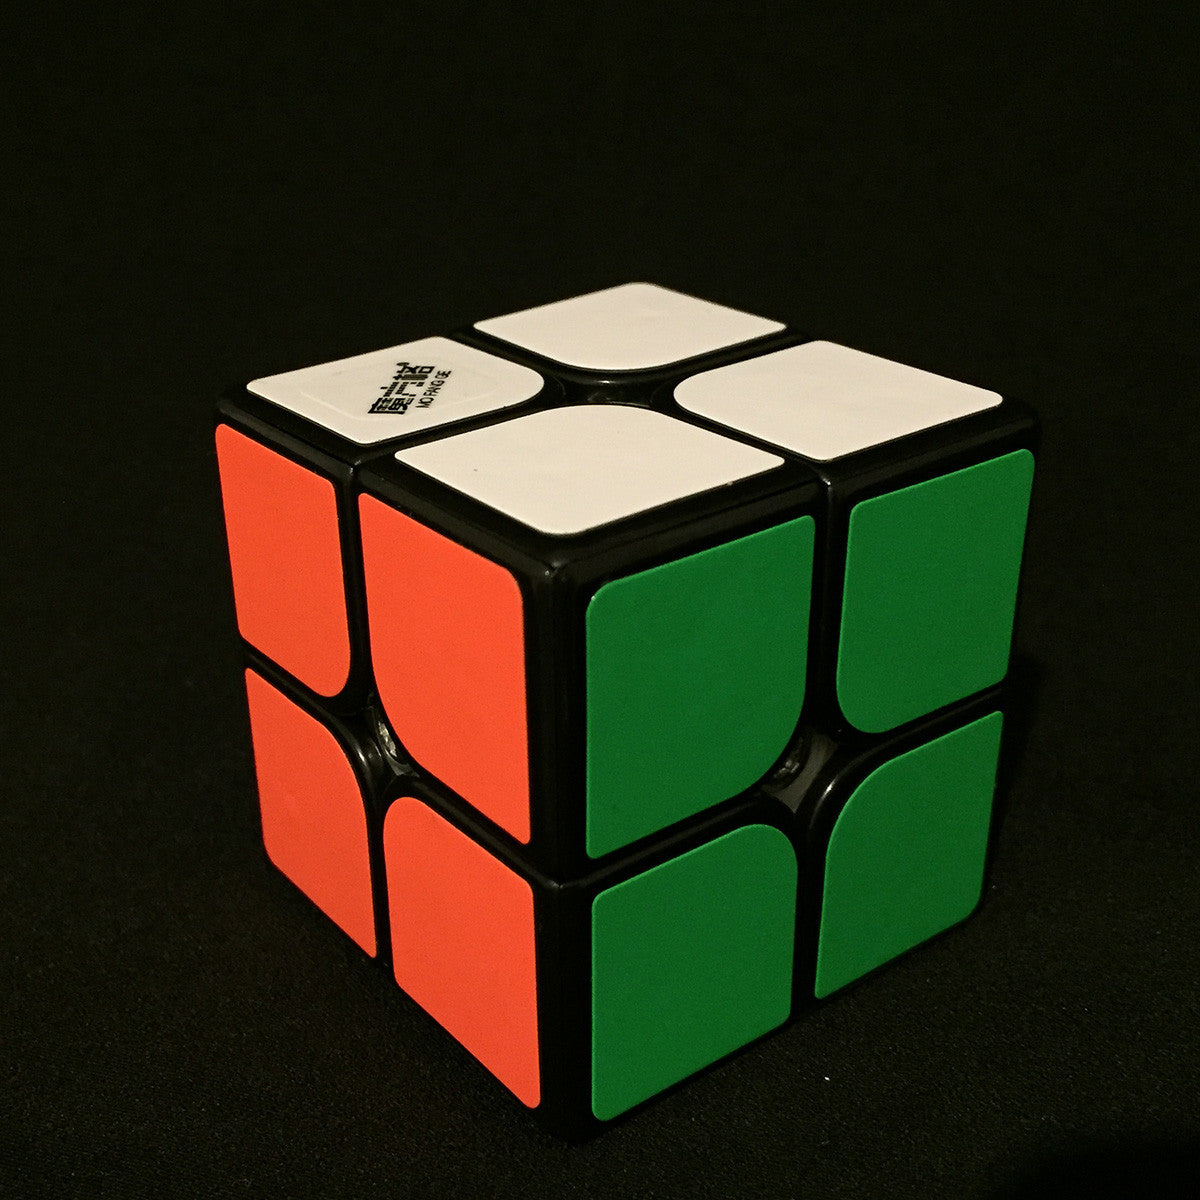 2×2×2 speed cube: The Cav